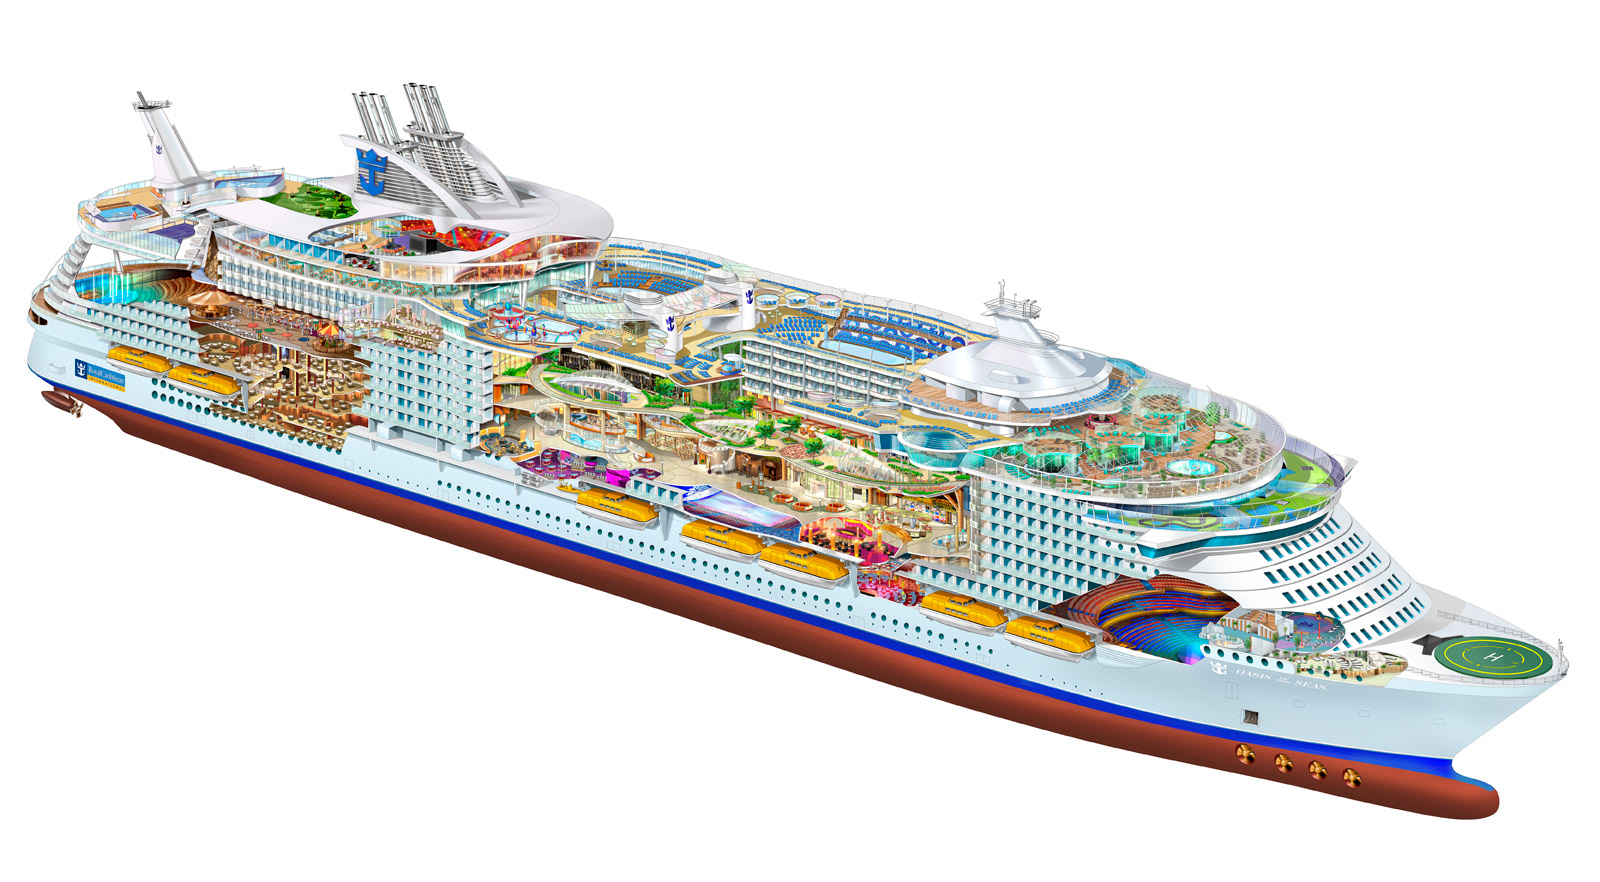 Royal Caribbean Oasis Of The Seas Cutaway Illustration Rendered In Adobe Photoshop